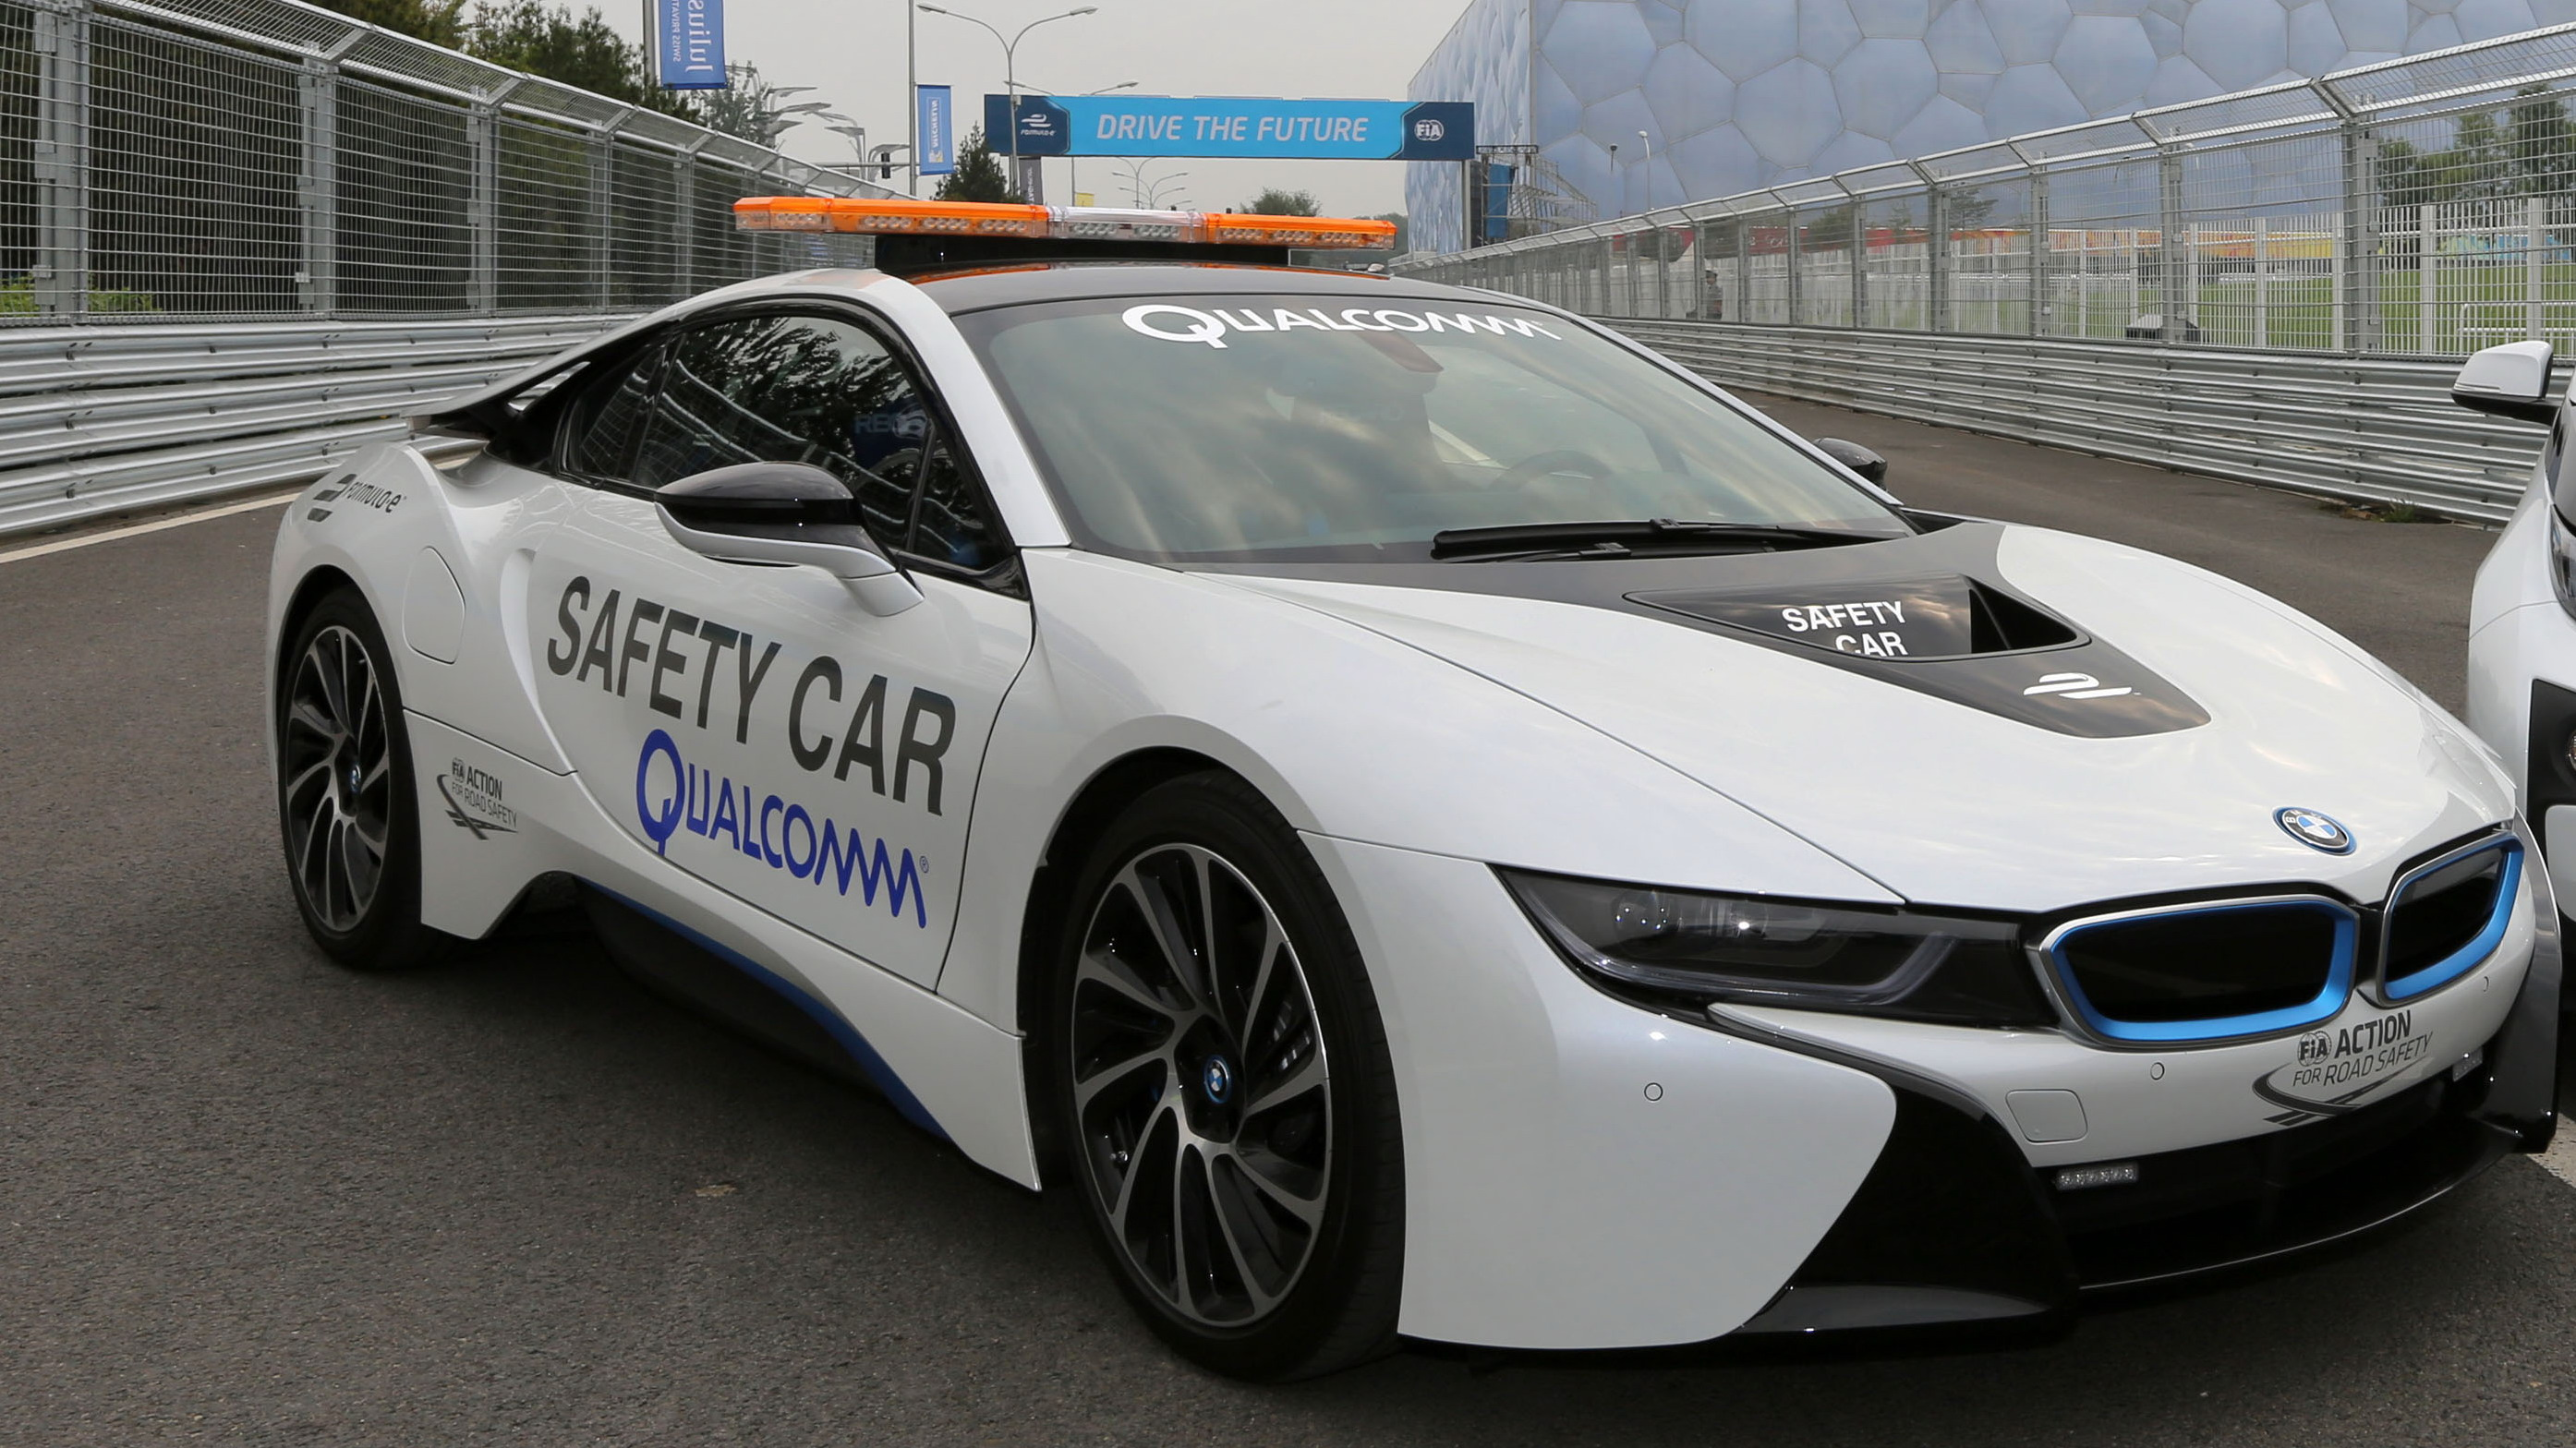 2015 Bmw I8 Safety Car Gallery 568454 Top Speed